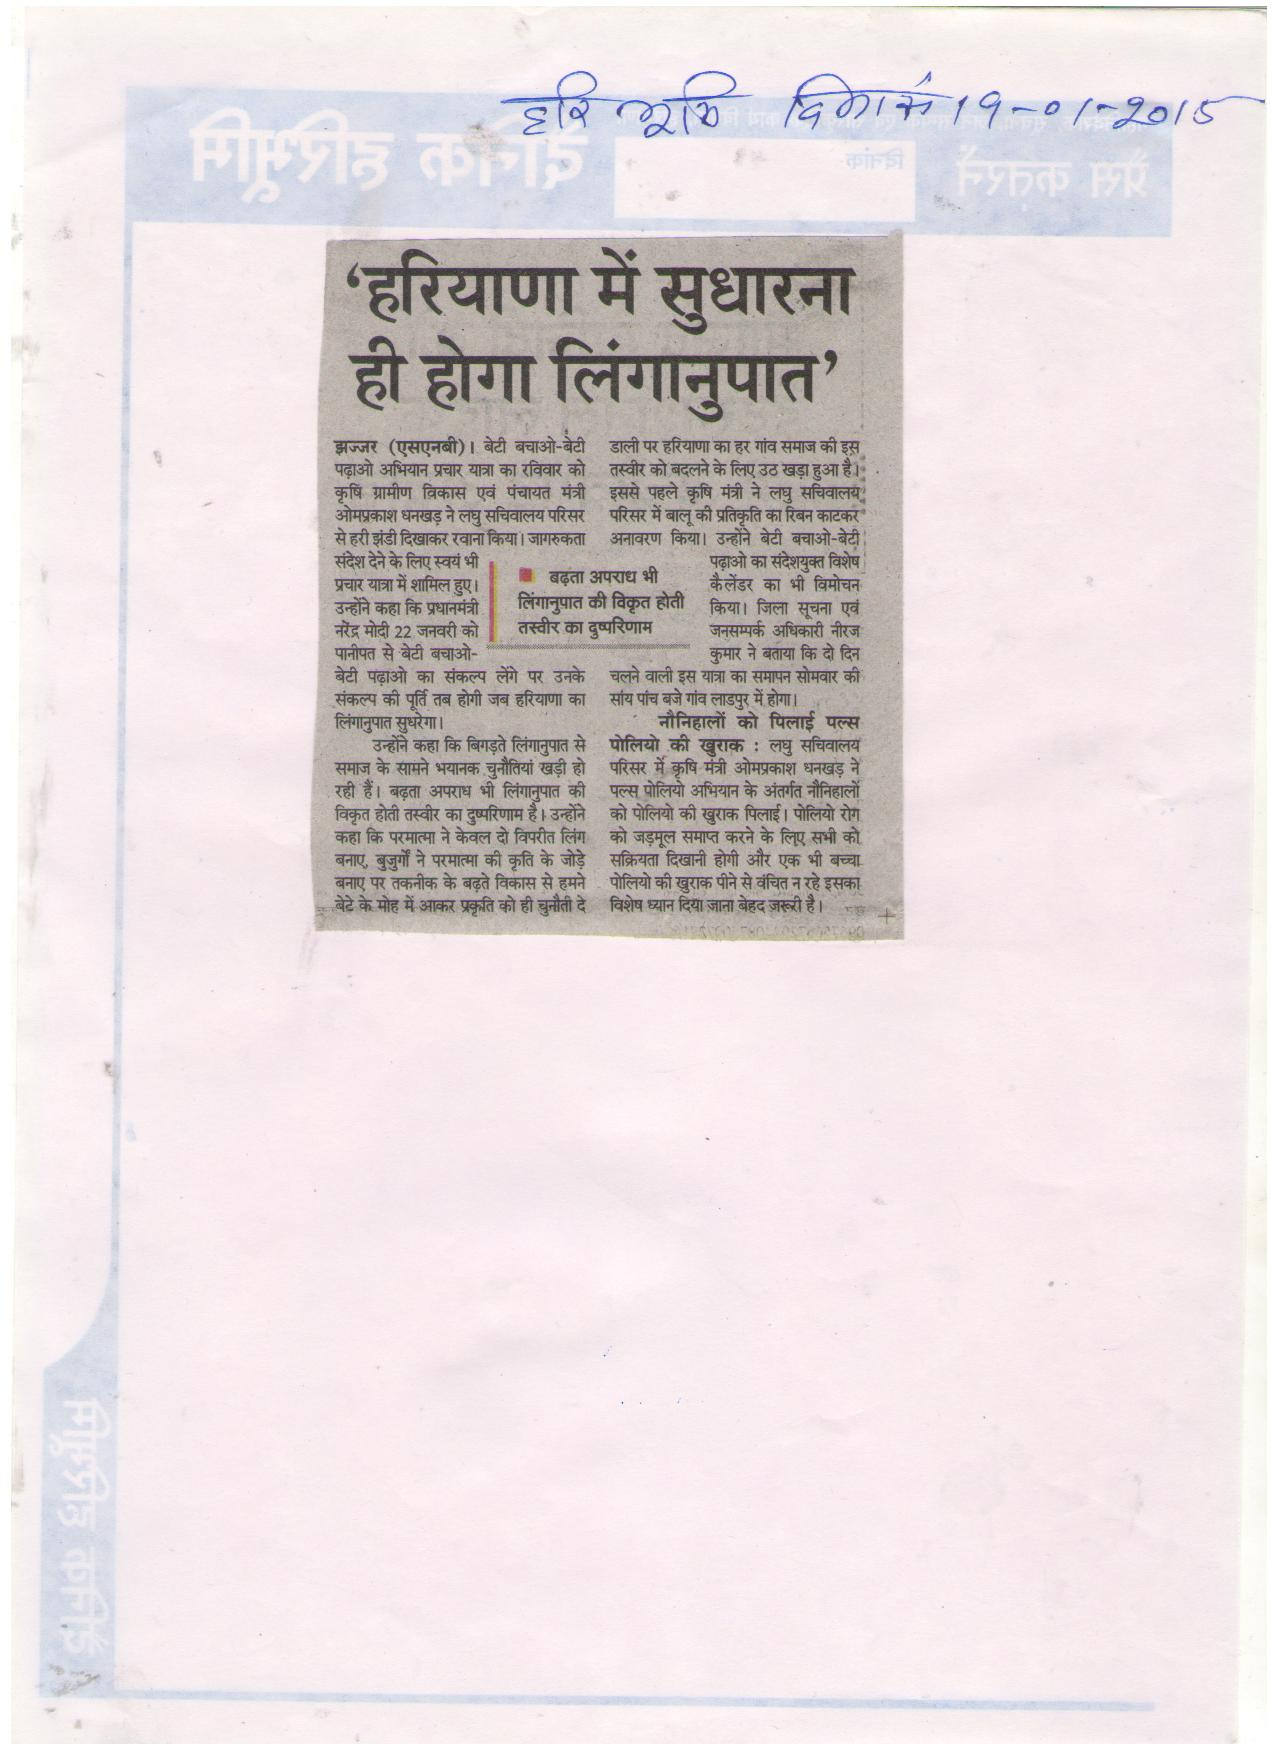 News Clipping regarding Beti Bachao-Beti Padhao - Photo 6